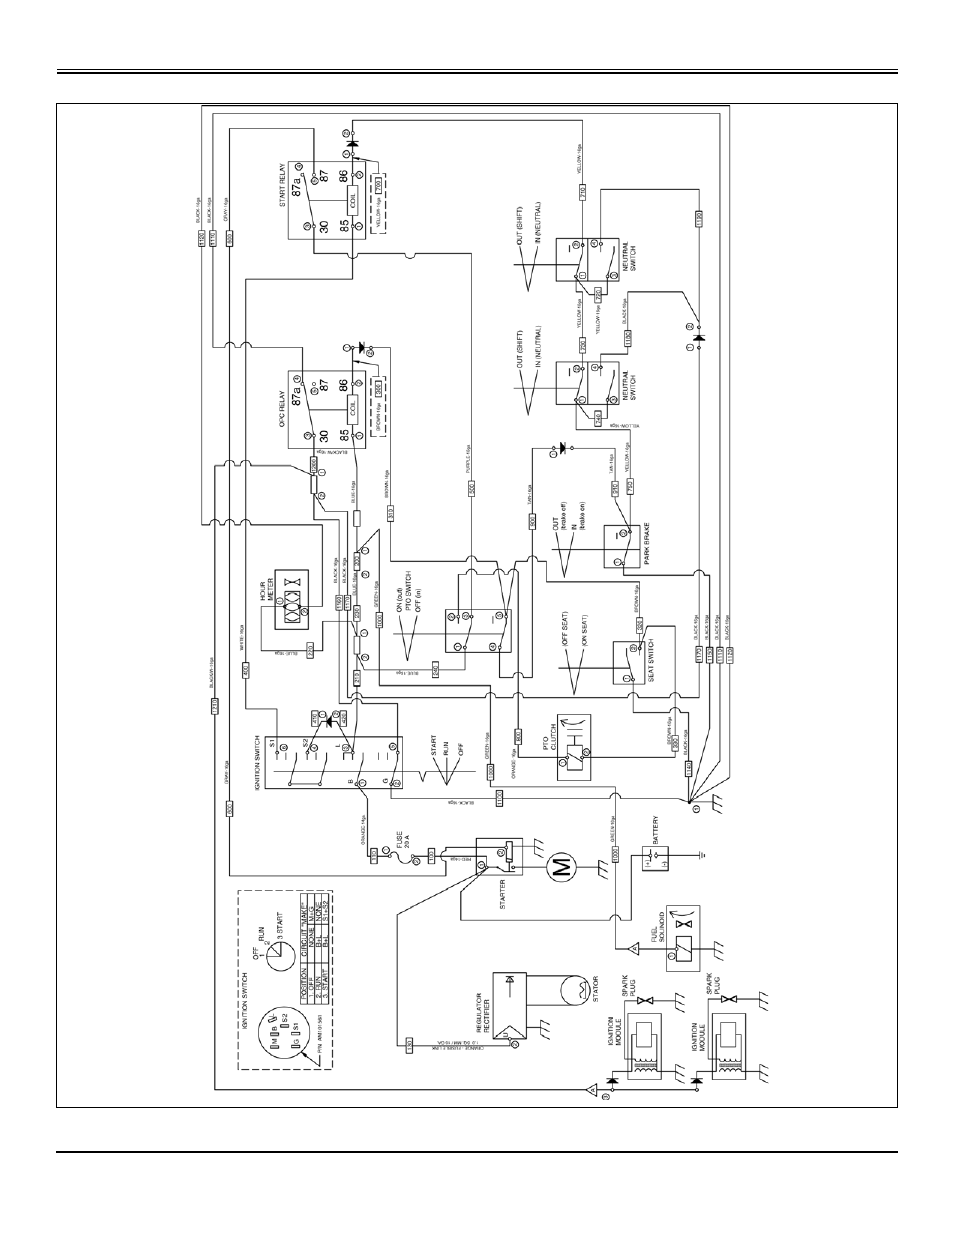 Great Dane Wiring Schematic Simple Diagram Schema Service Electrical Chariot Brutus Gbkw2552s User Manual